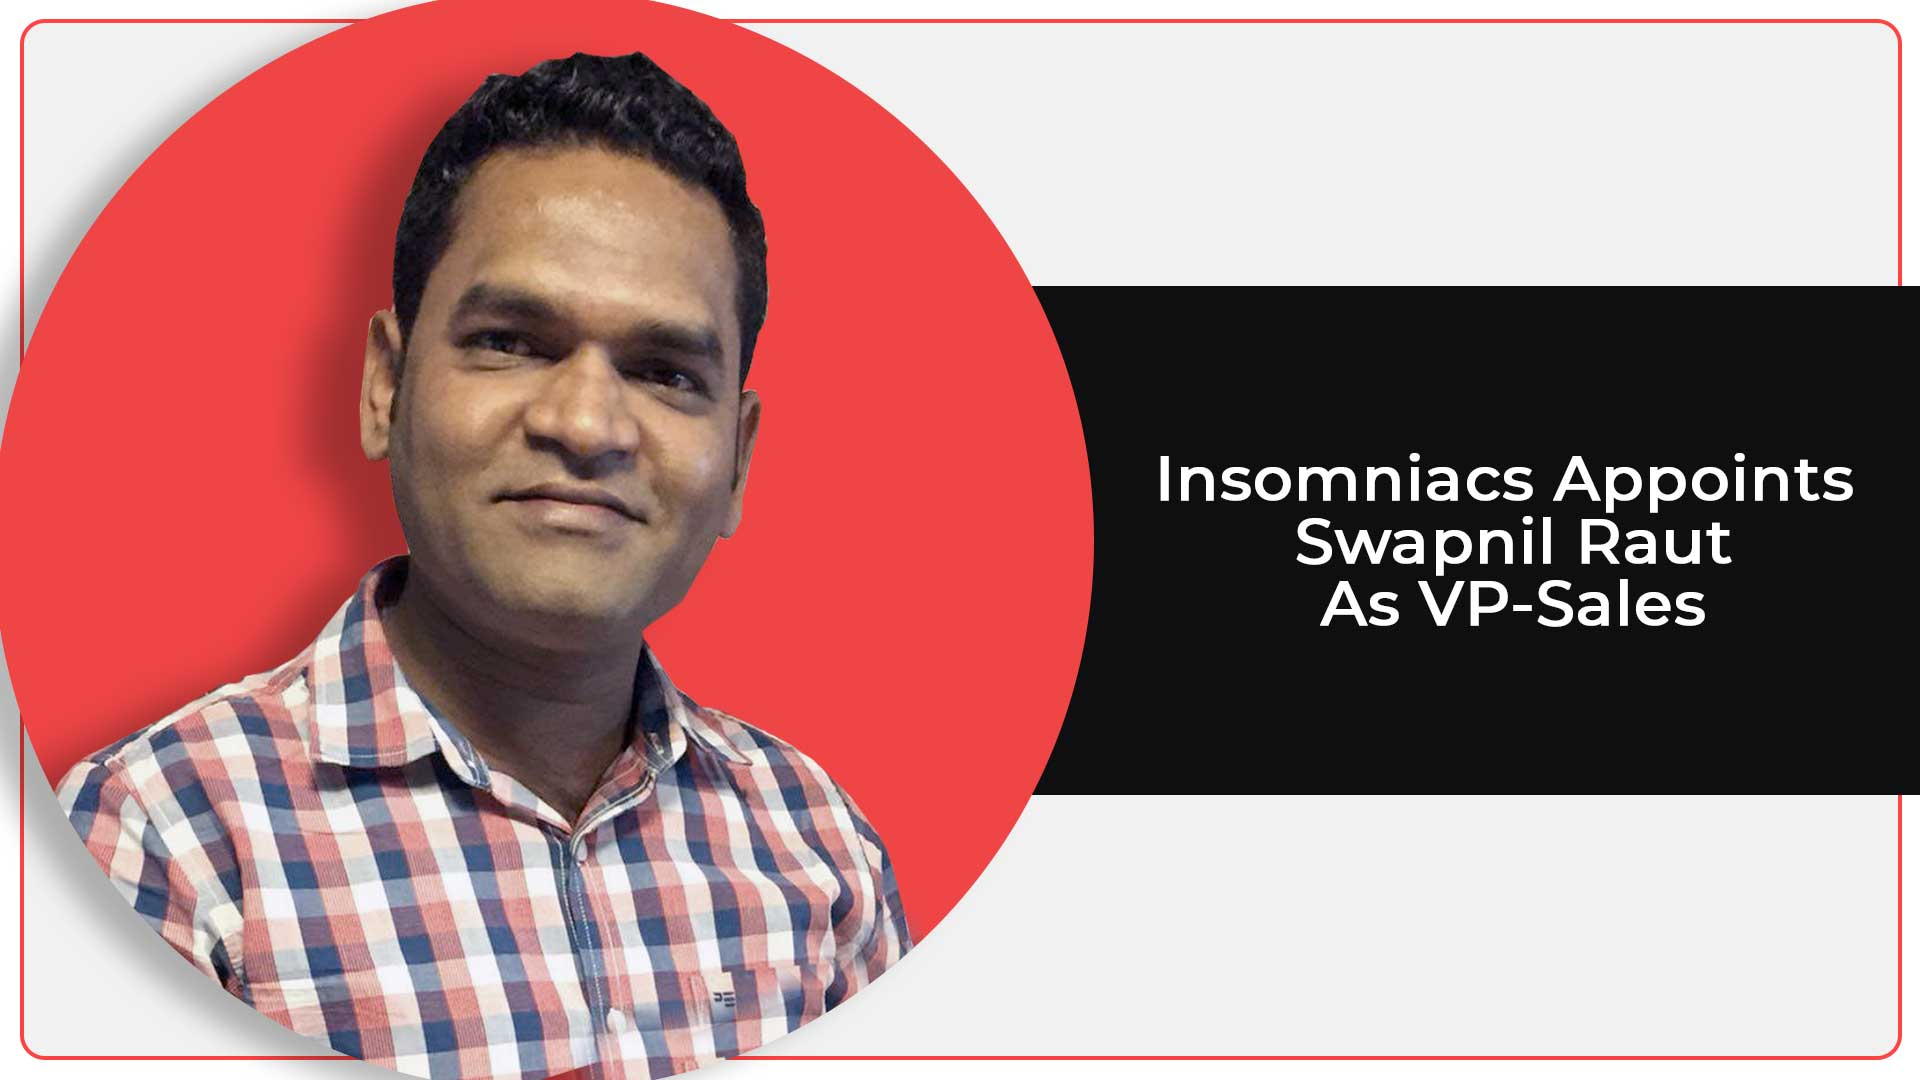 Swapnil Raut Becomes VP-Sales At Insomniacs